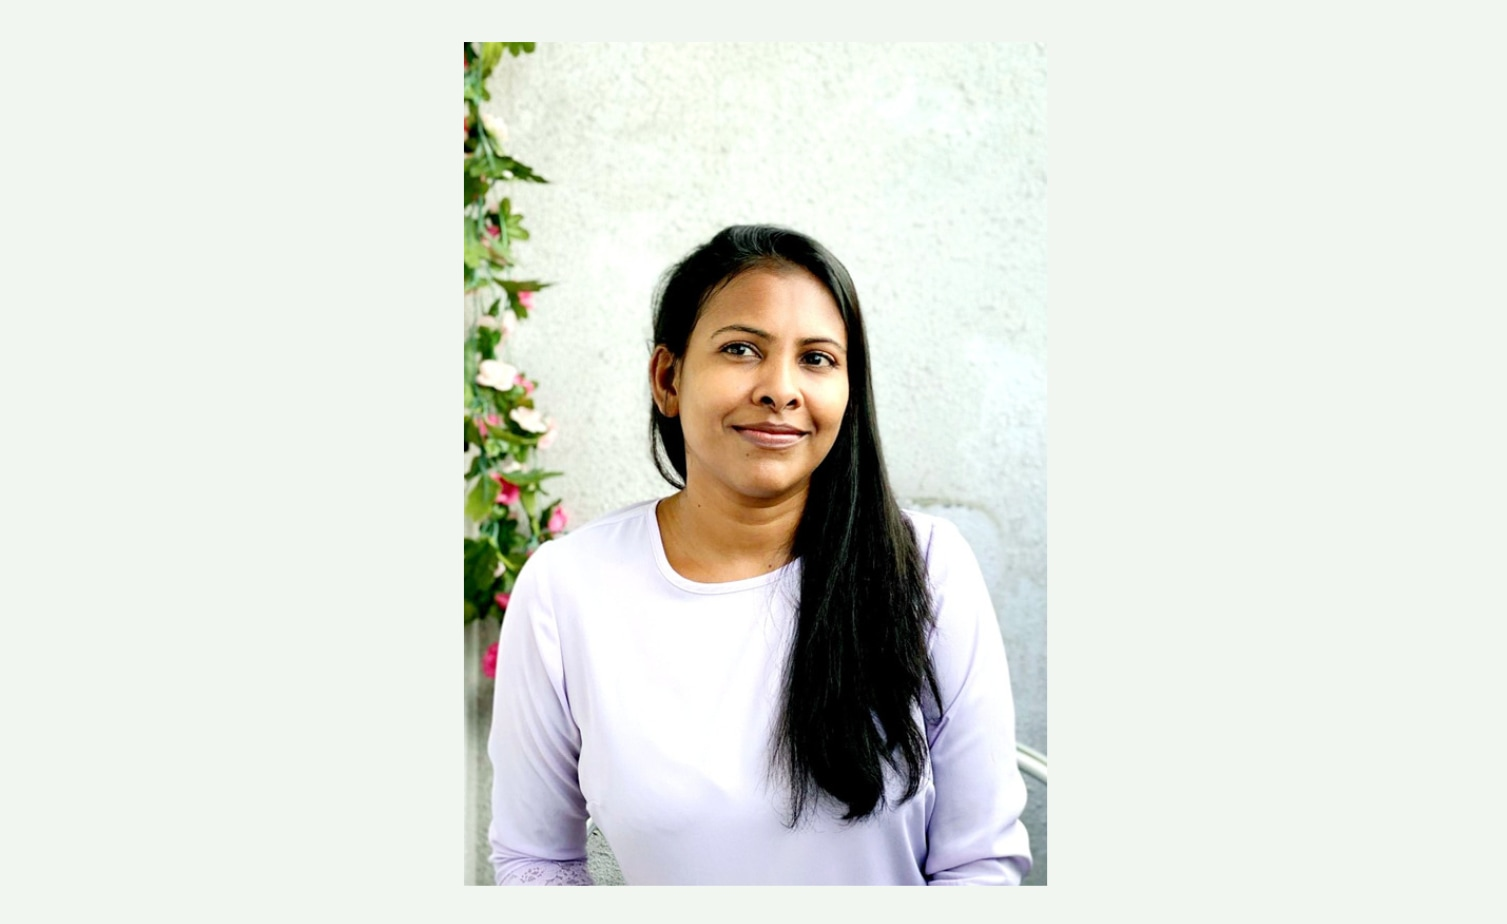 Soneva Appoint Aisha Ali as the new Director of Sales.